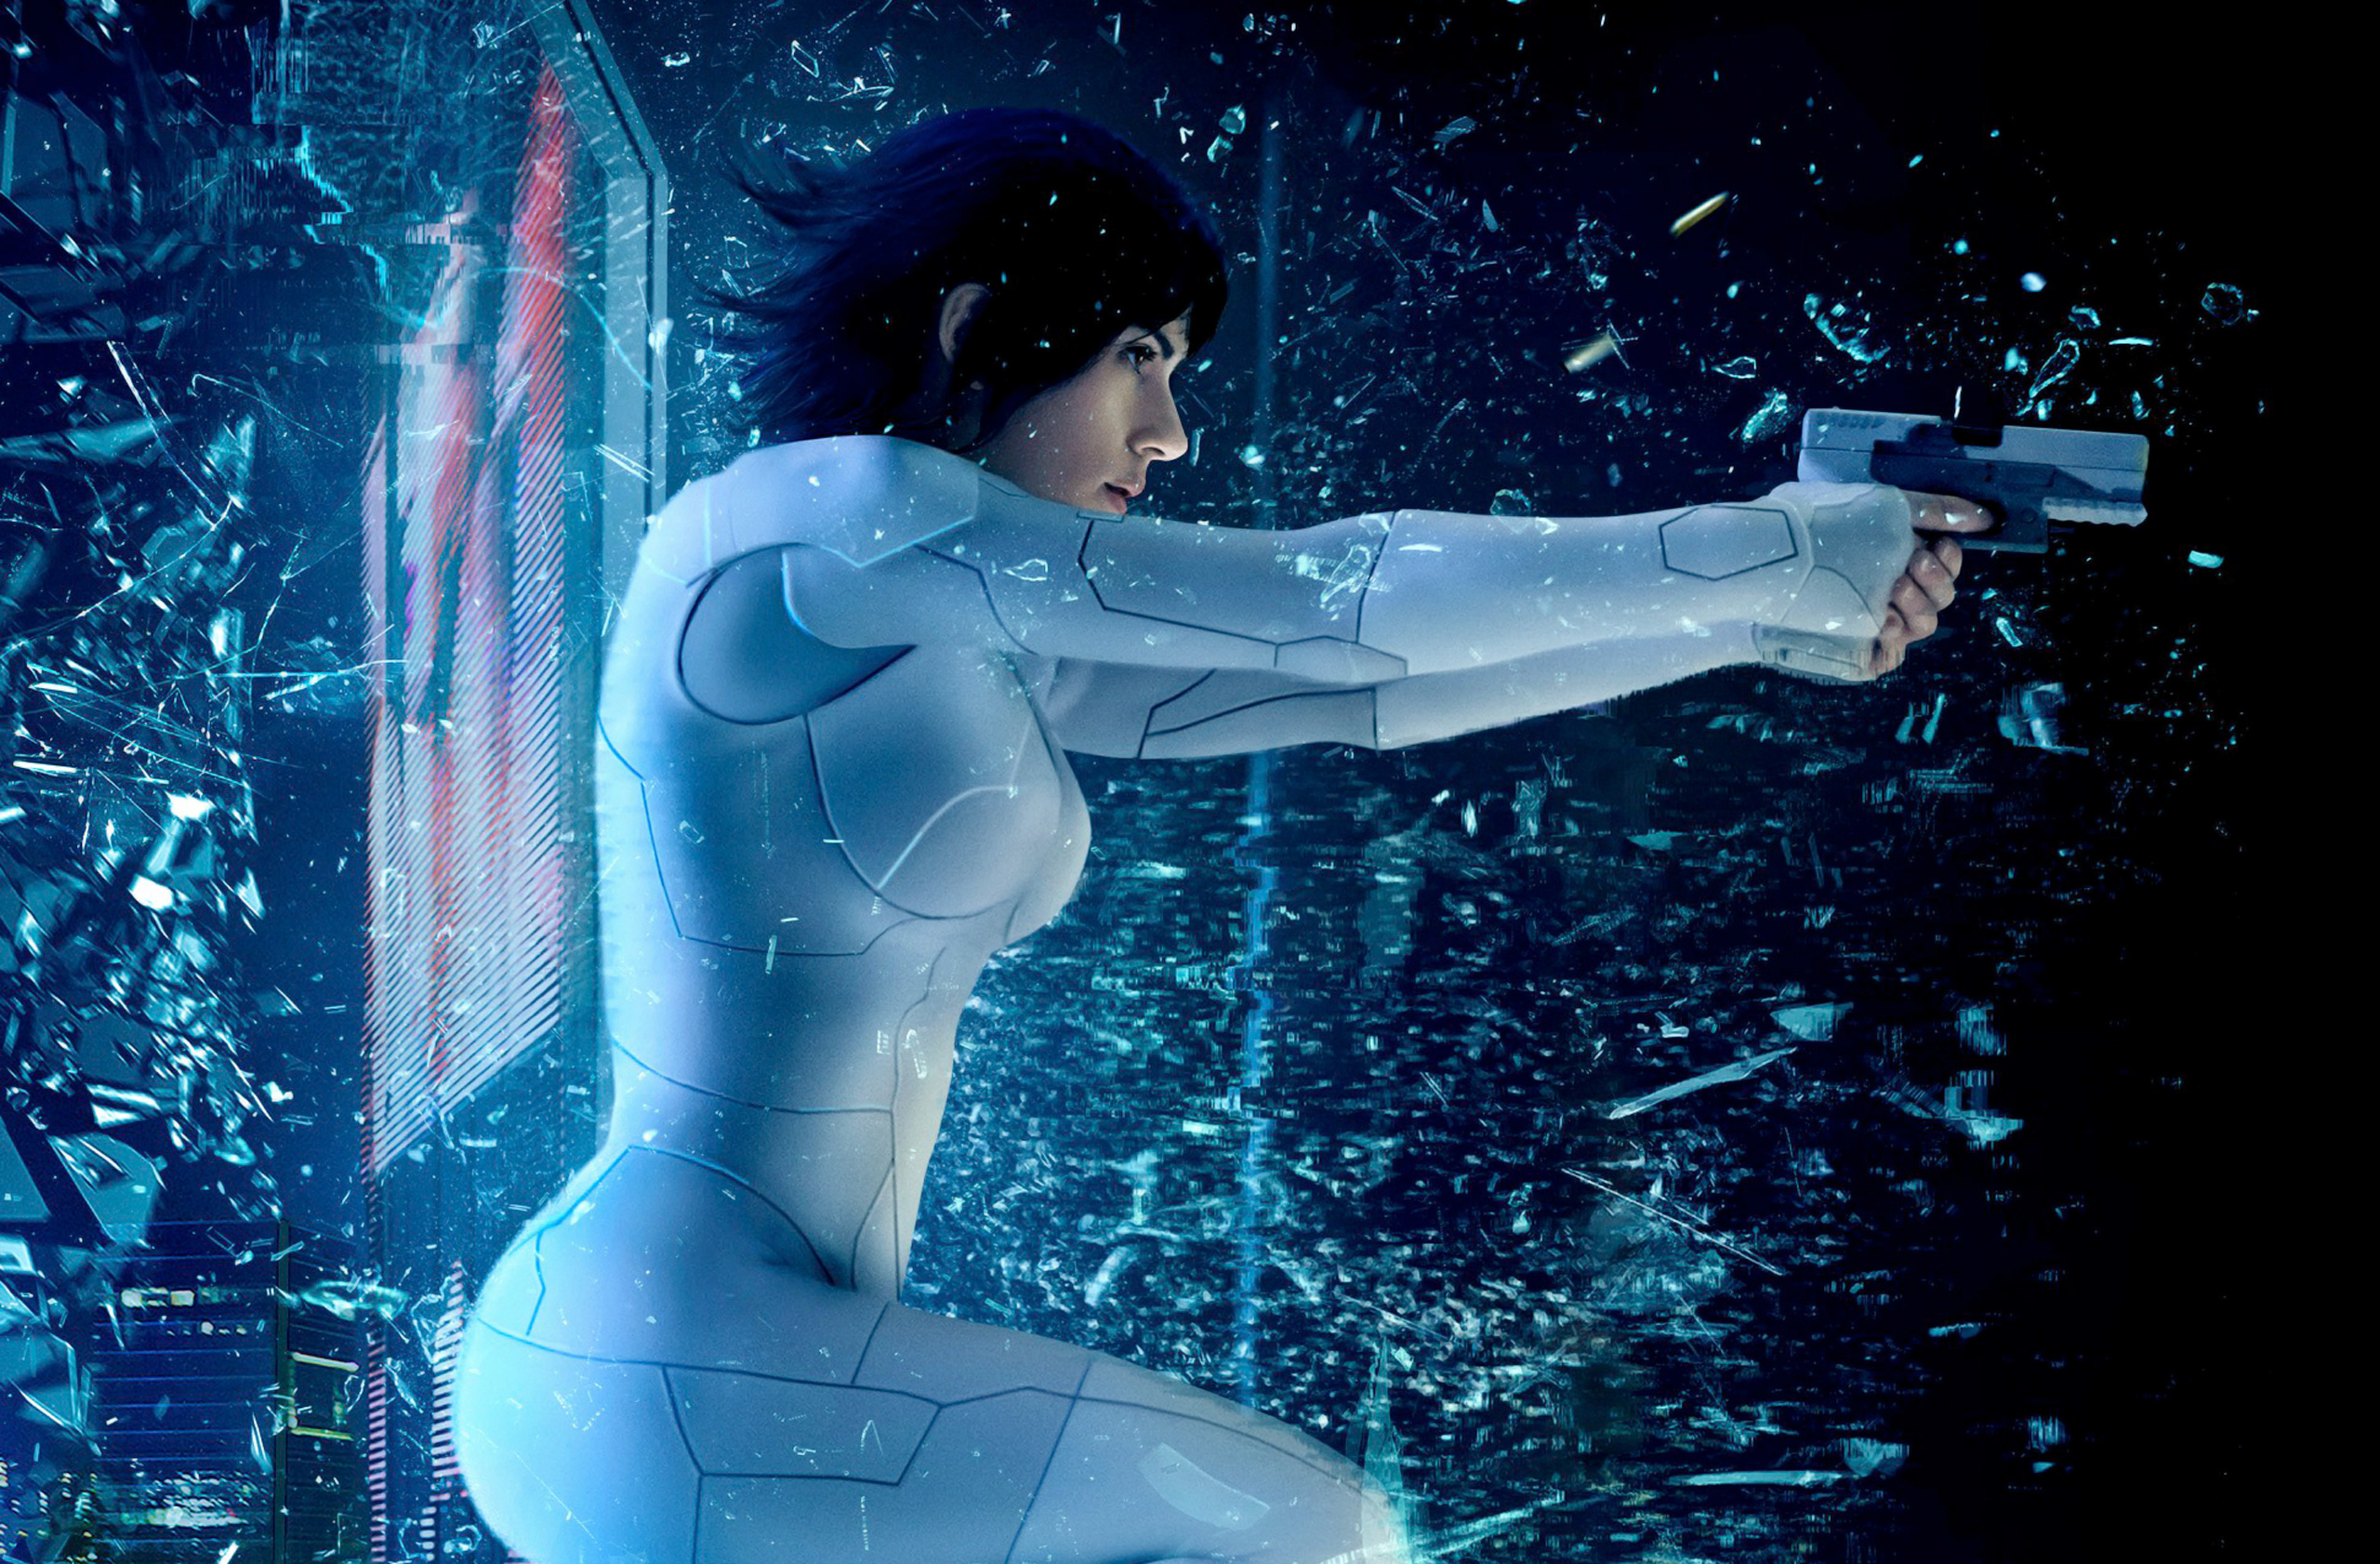 Ghost In The Shell 2017 Movie, HD Movies, 4k Wallpapers